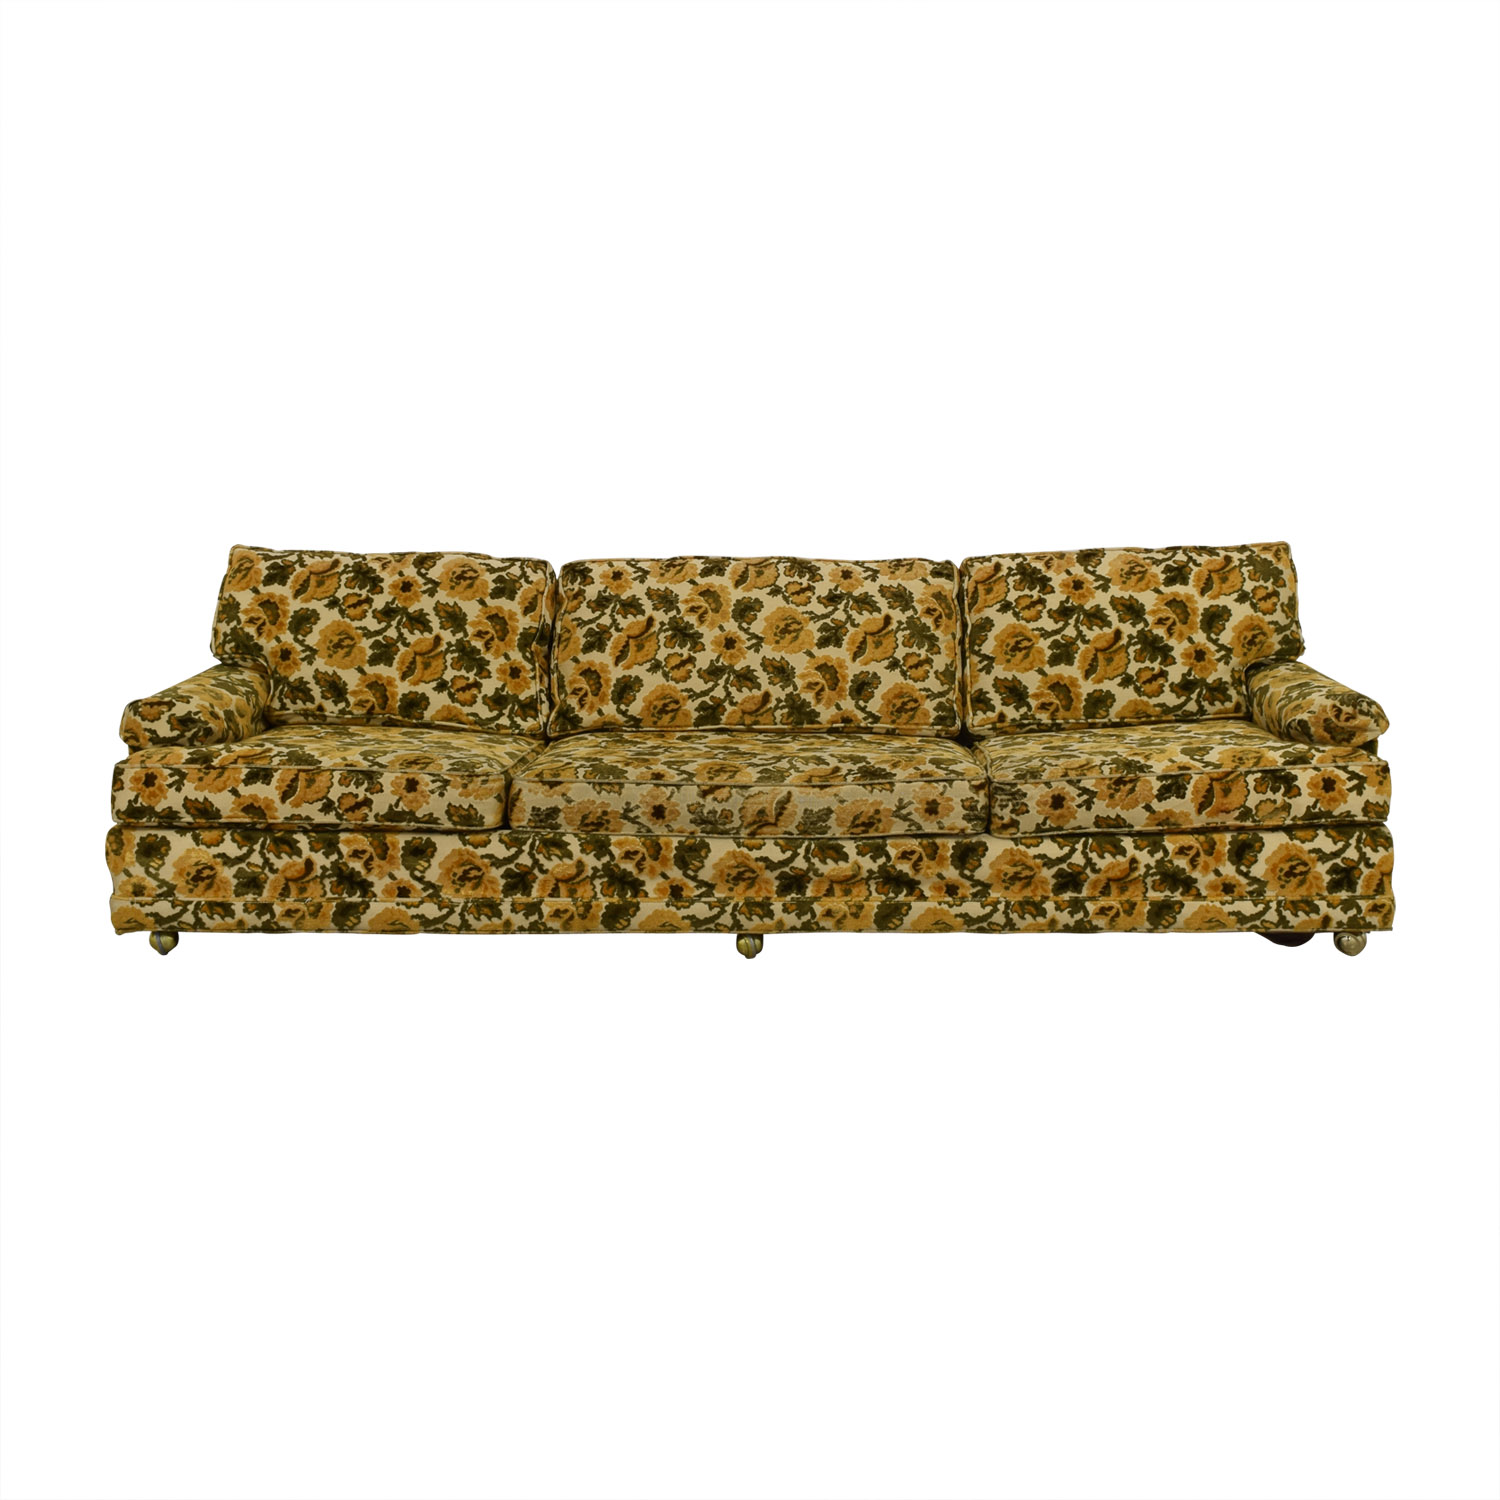 Karpen Furniture Karpen Furniture Mid-Century Yellow Floral Three-Cushion Sofa price